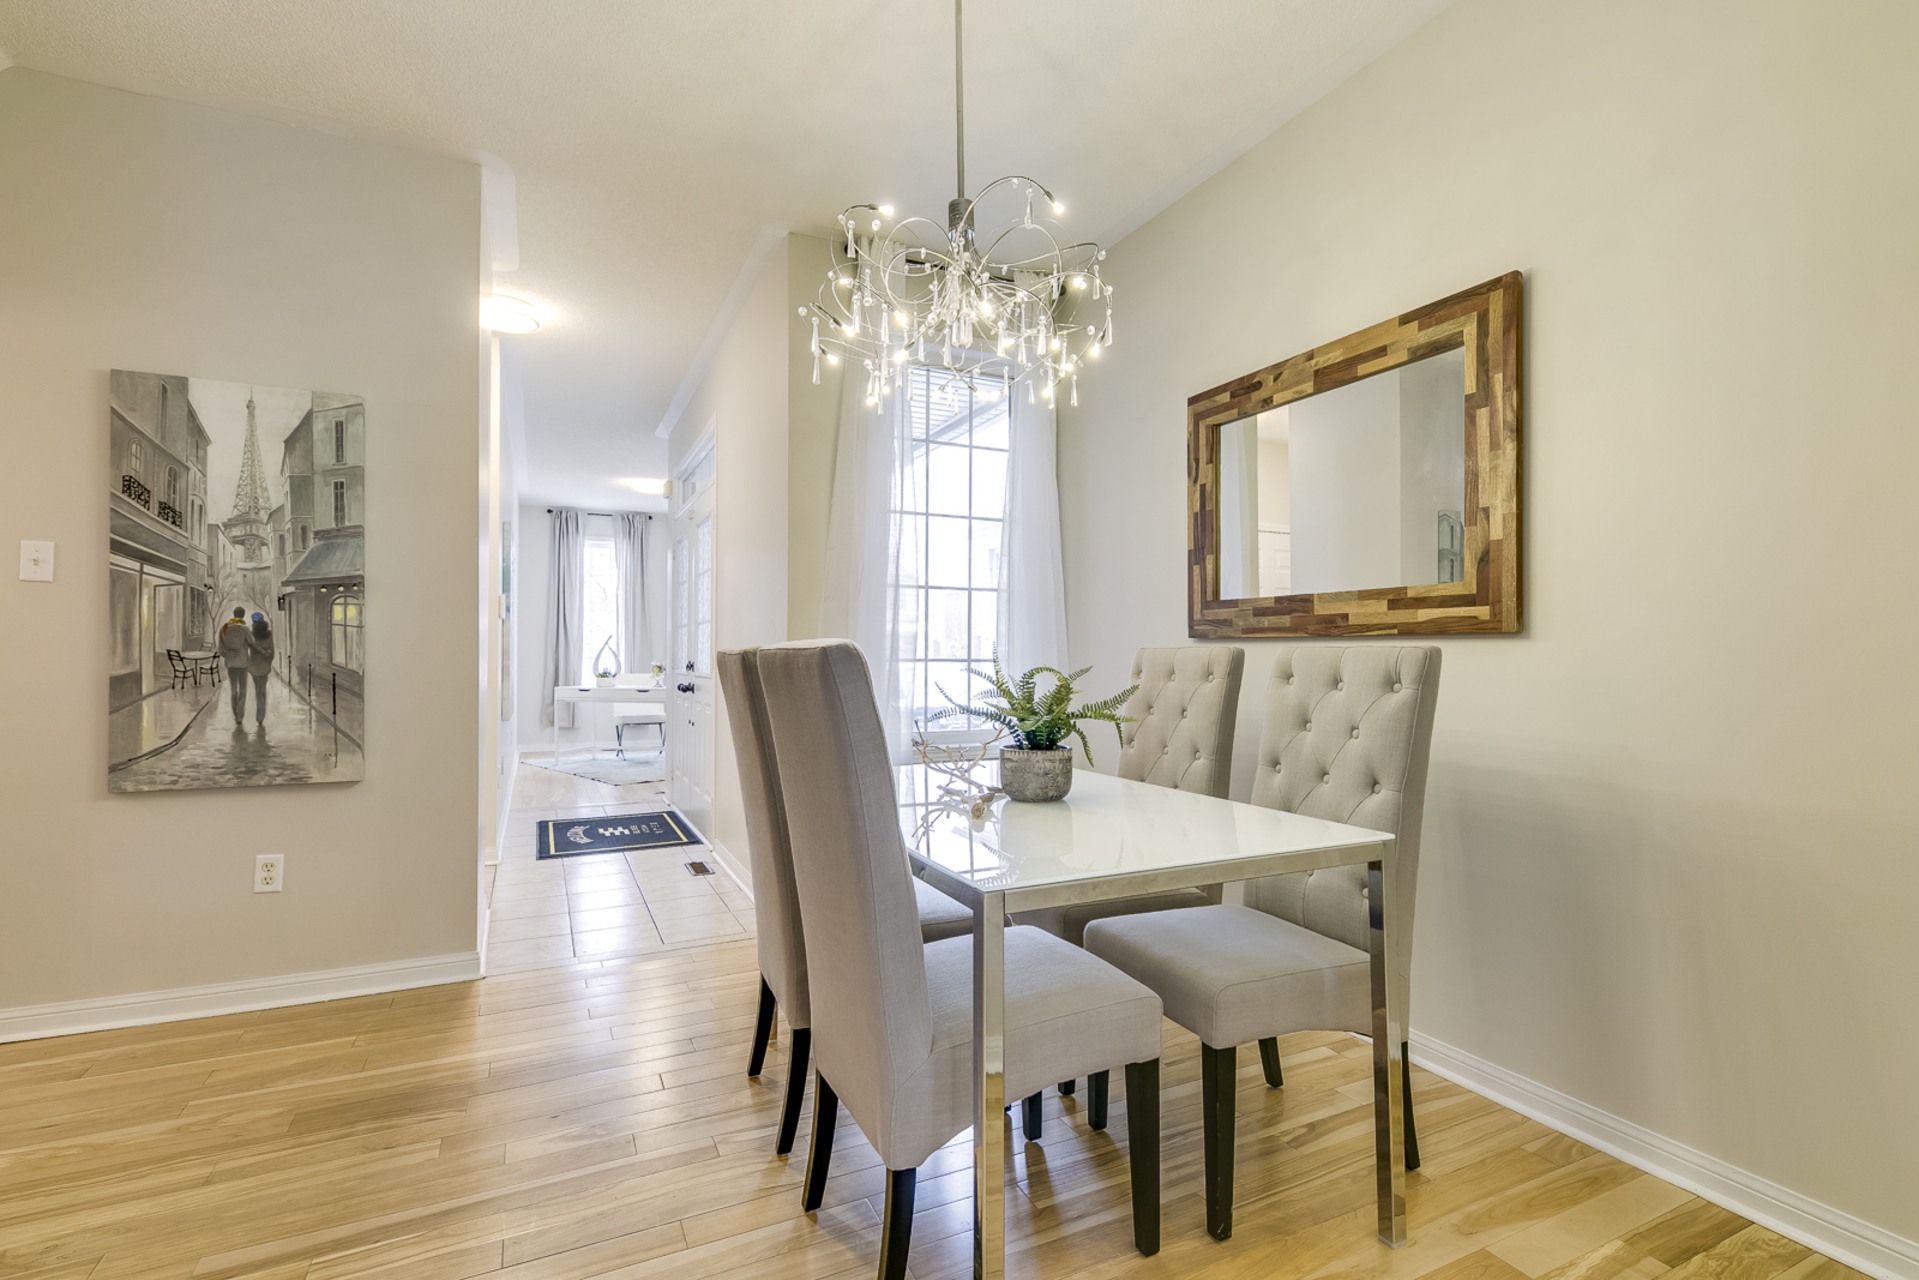 Dinning Room - 1342 Weir Chase, Mississauga - Elite3 & Team at 1342 Weir Chase, East Credit, Mississauga